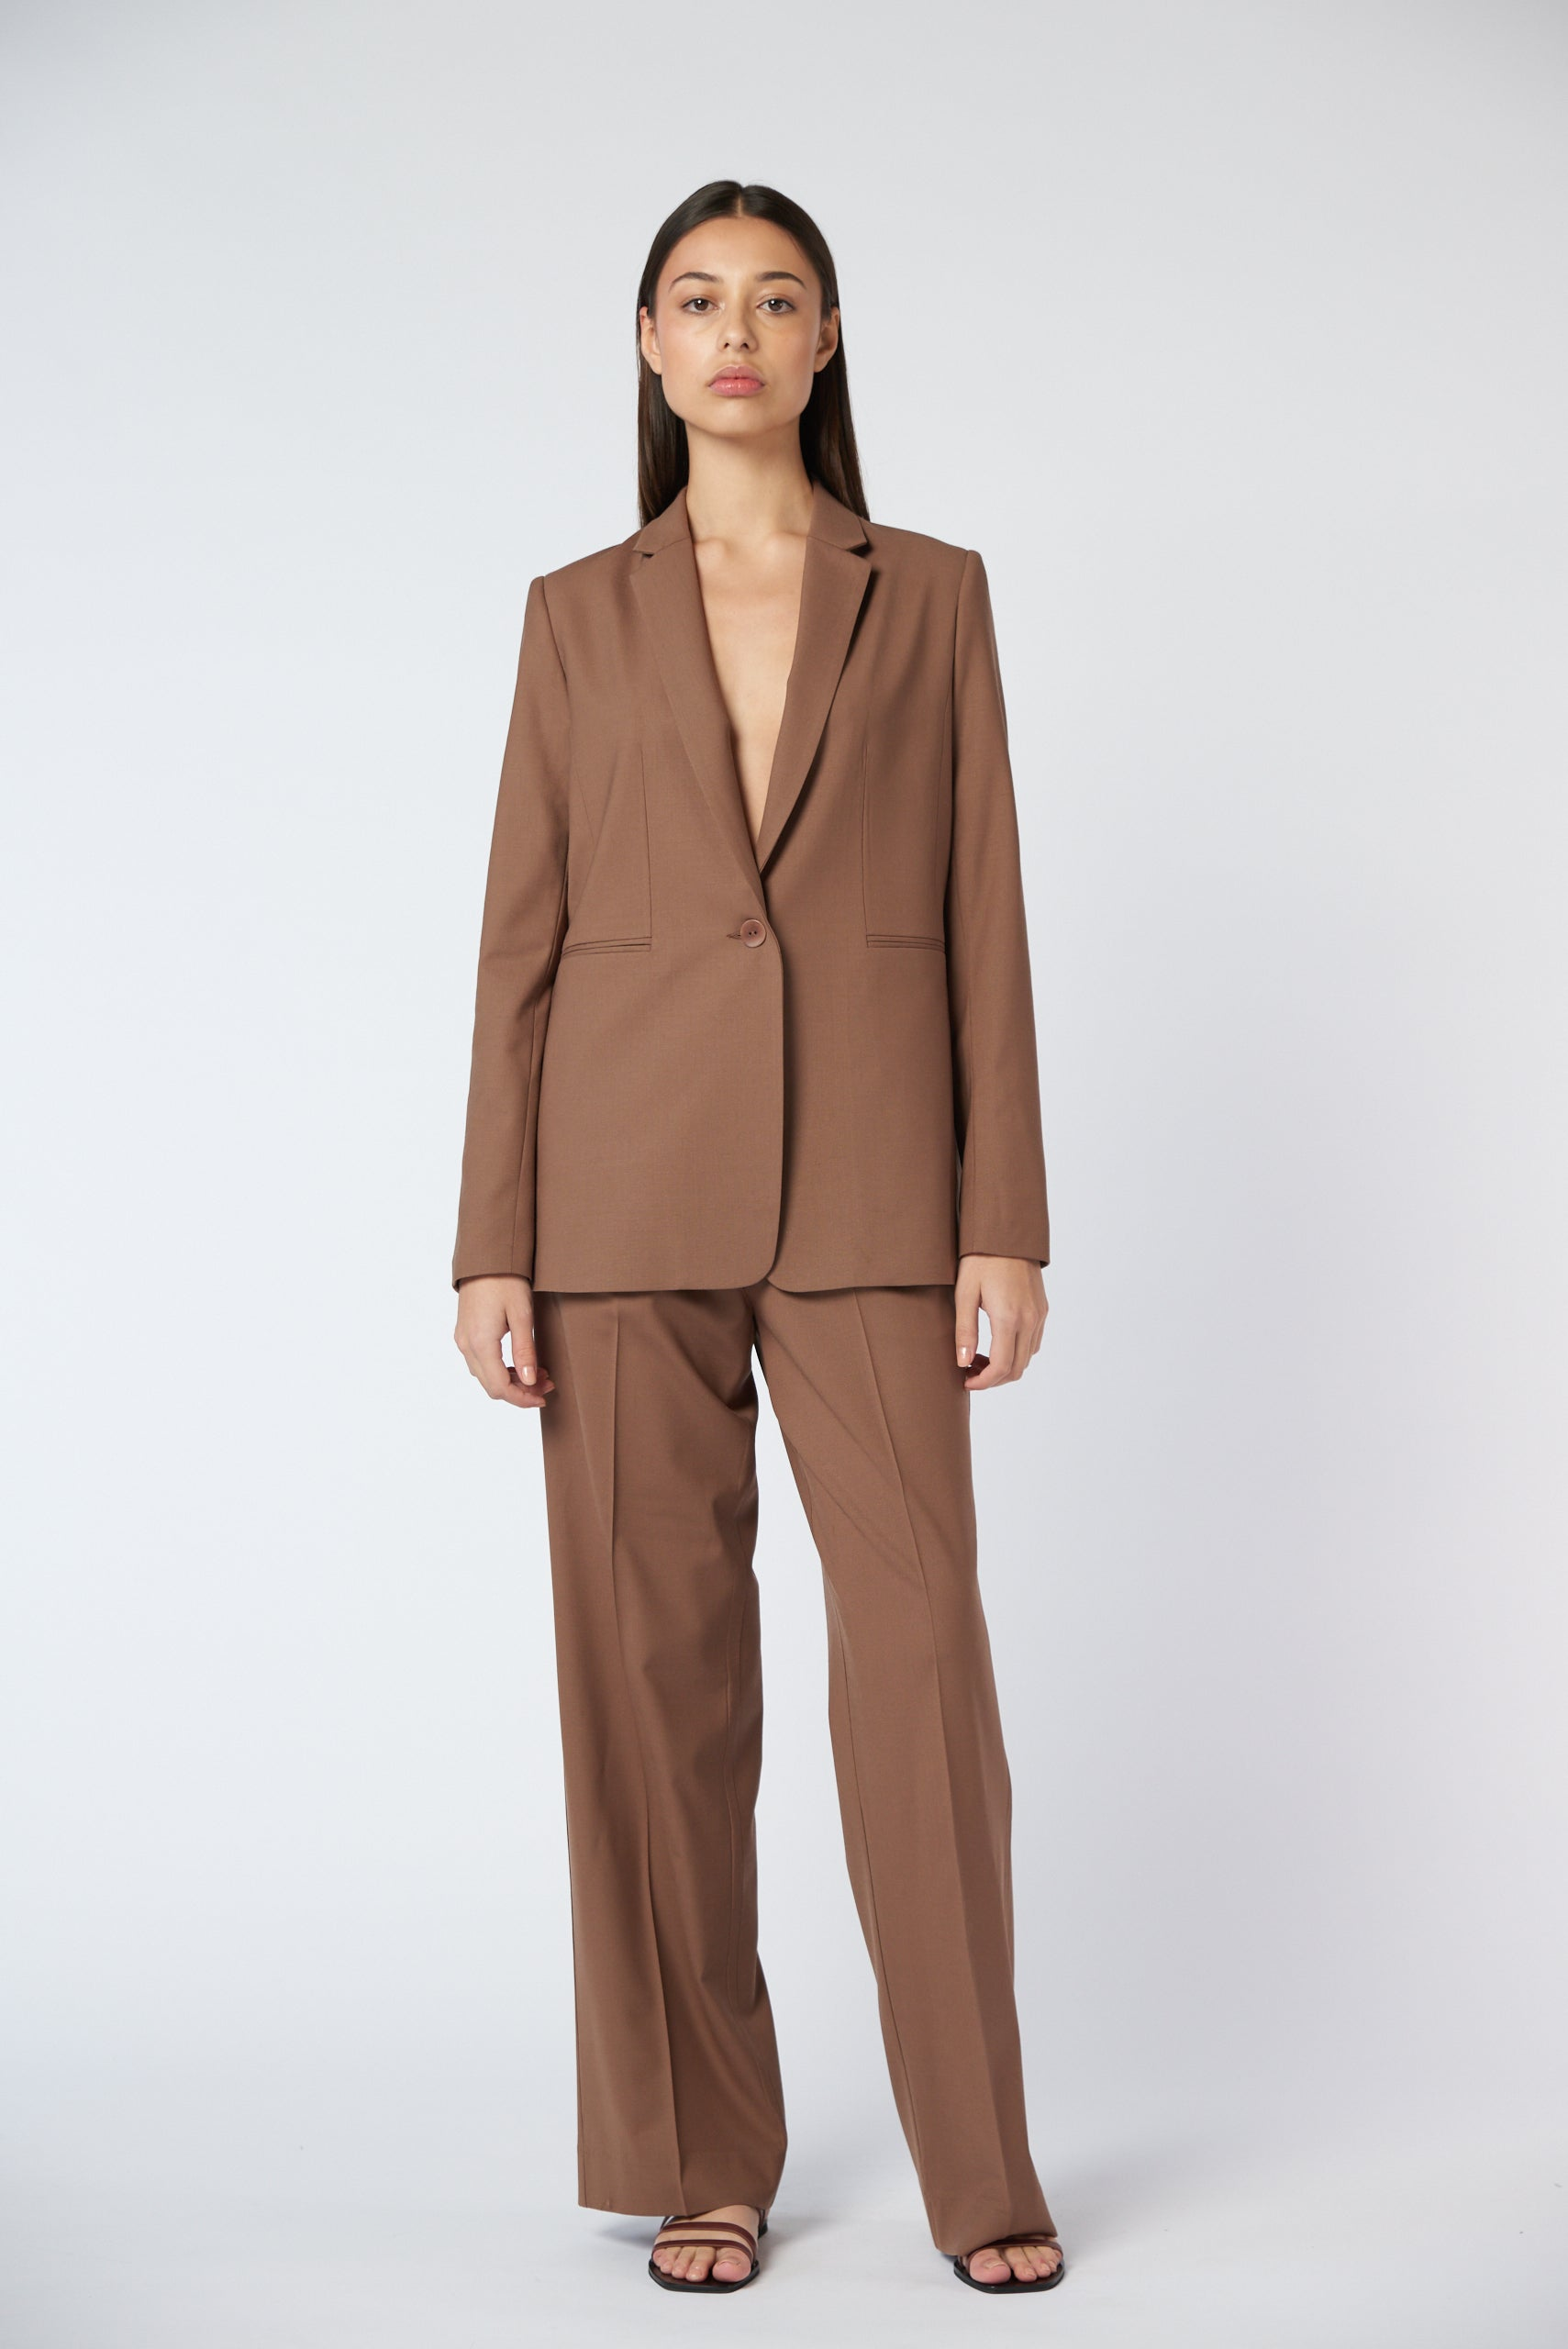 Celeste Suit Jacket - Cocoa